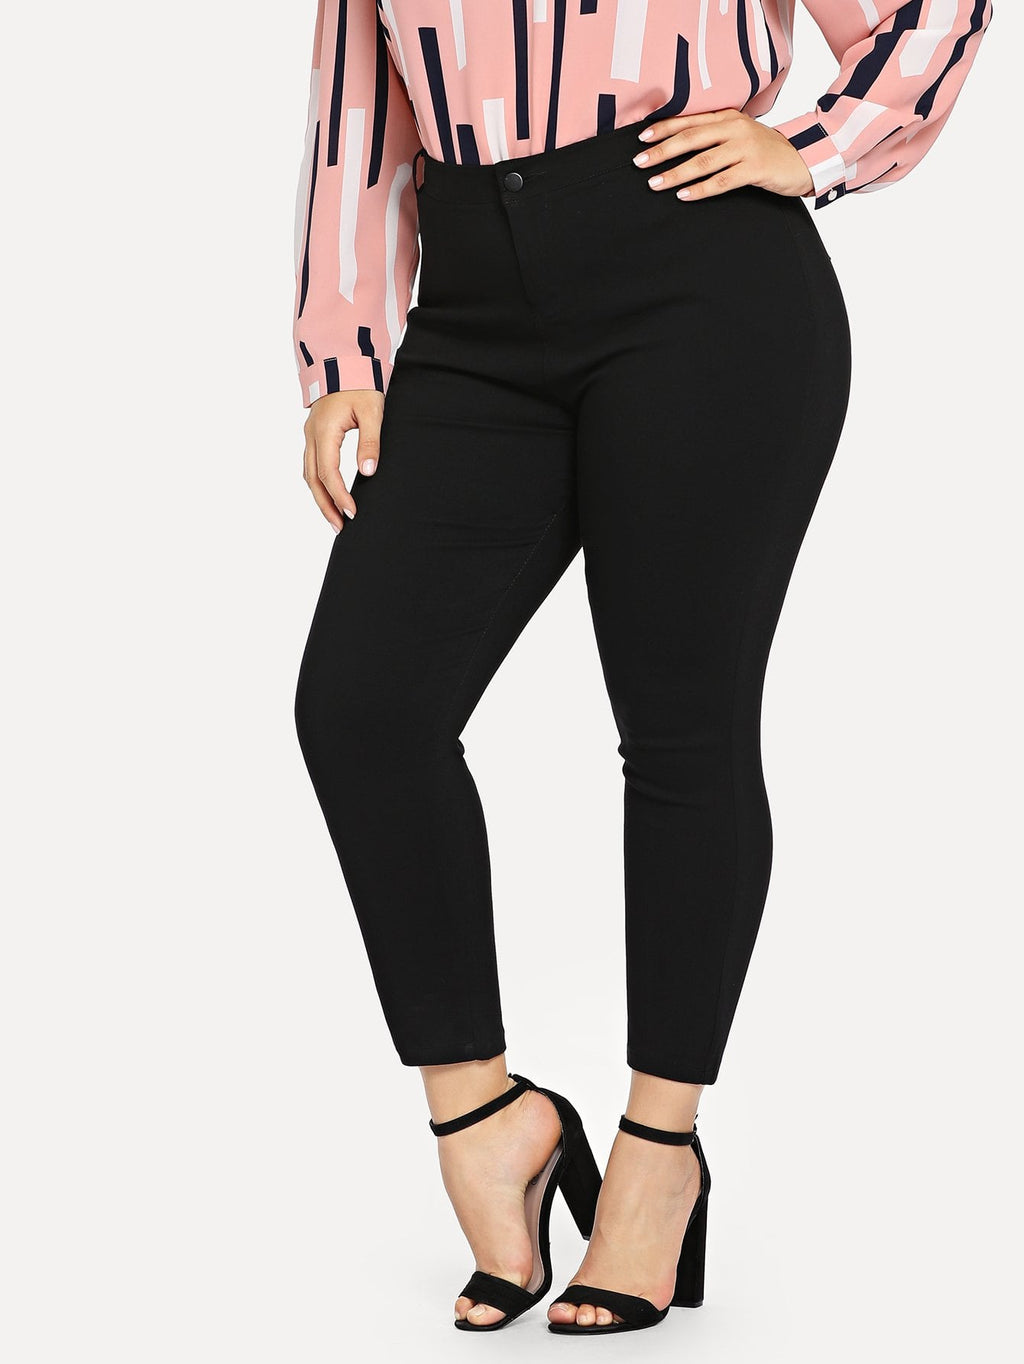 Plus Size Jeans - Solid Skinny Ankle Jeans